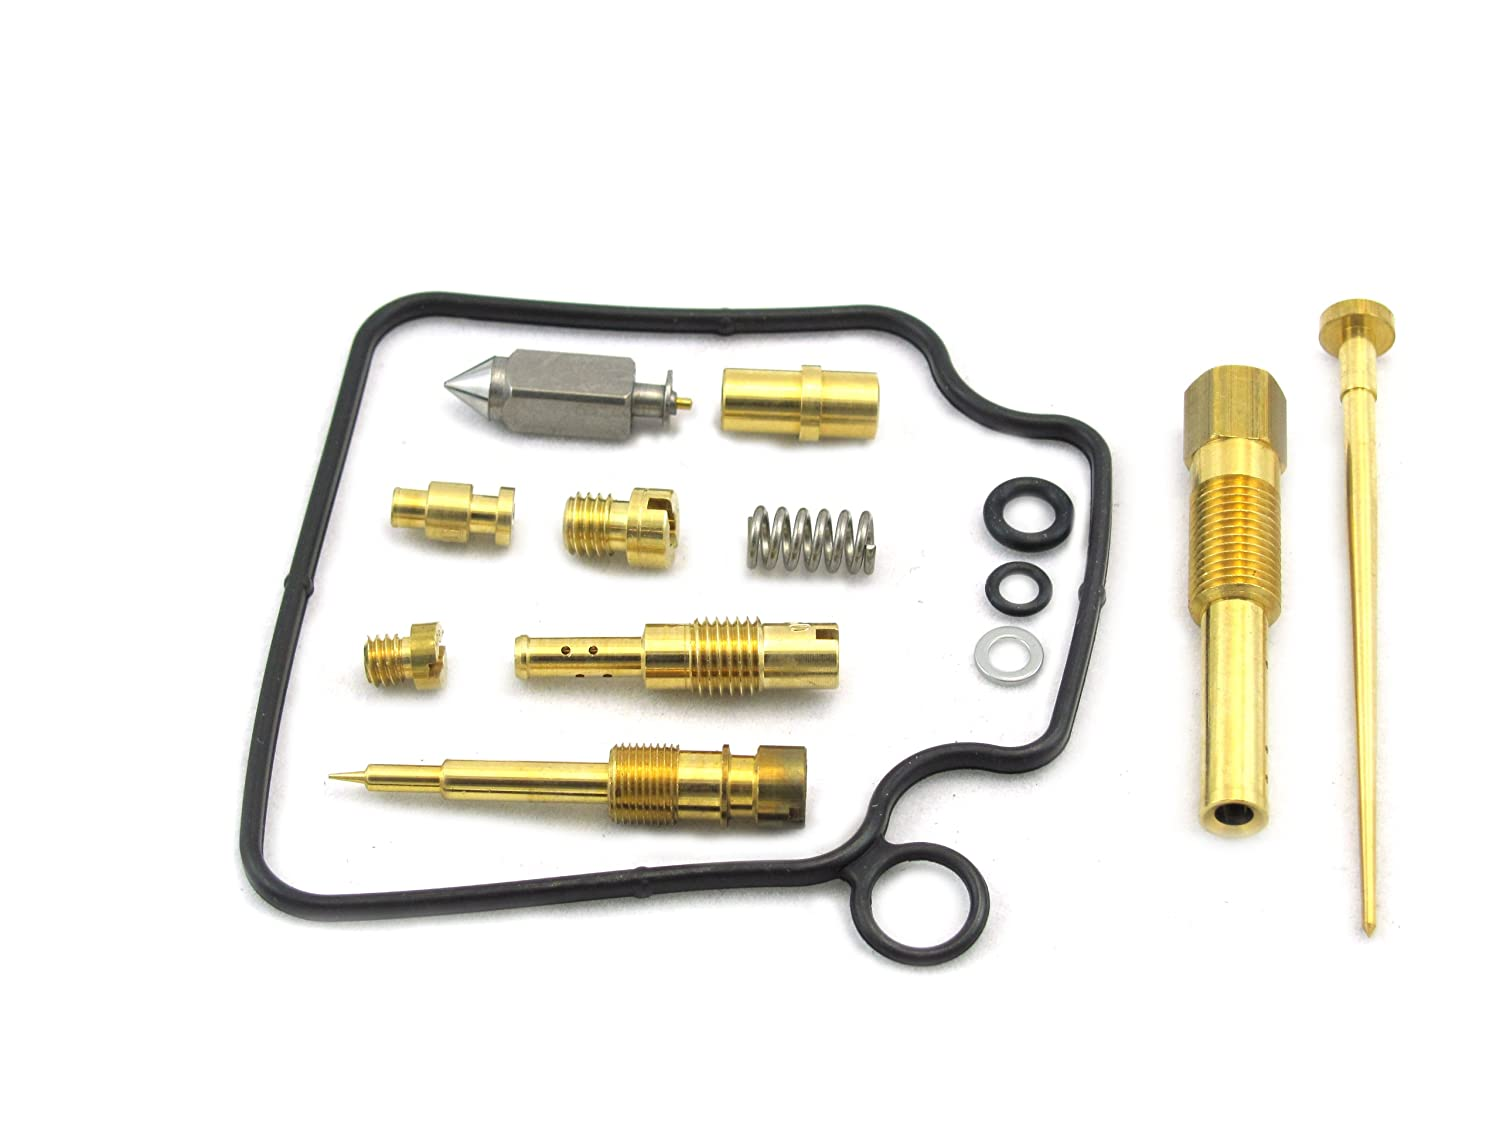 Freedom County ATV FC03046 Carburetor Rebuild Kit for Honda TRX650 Rincon